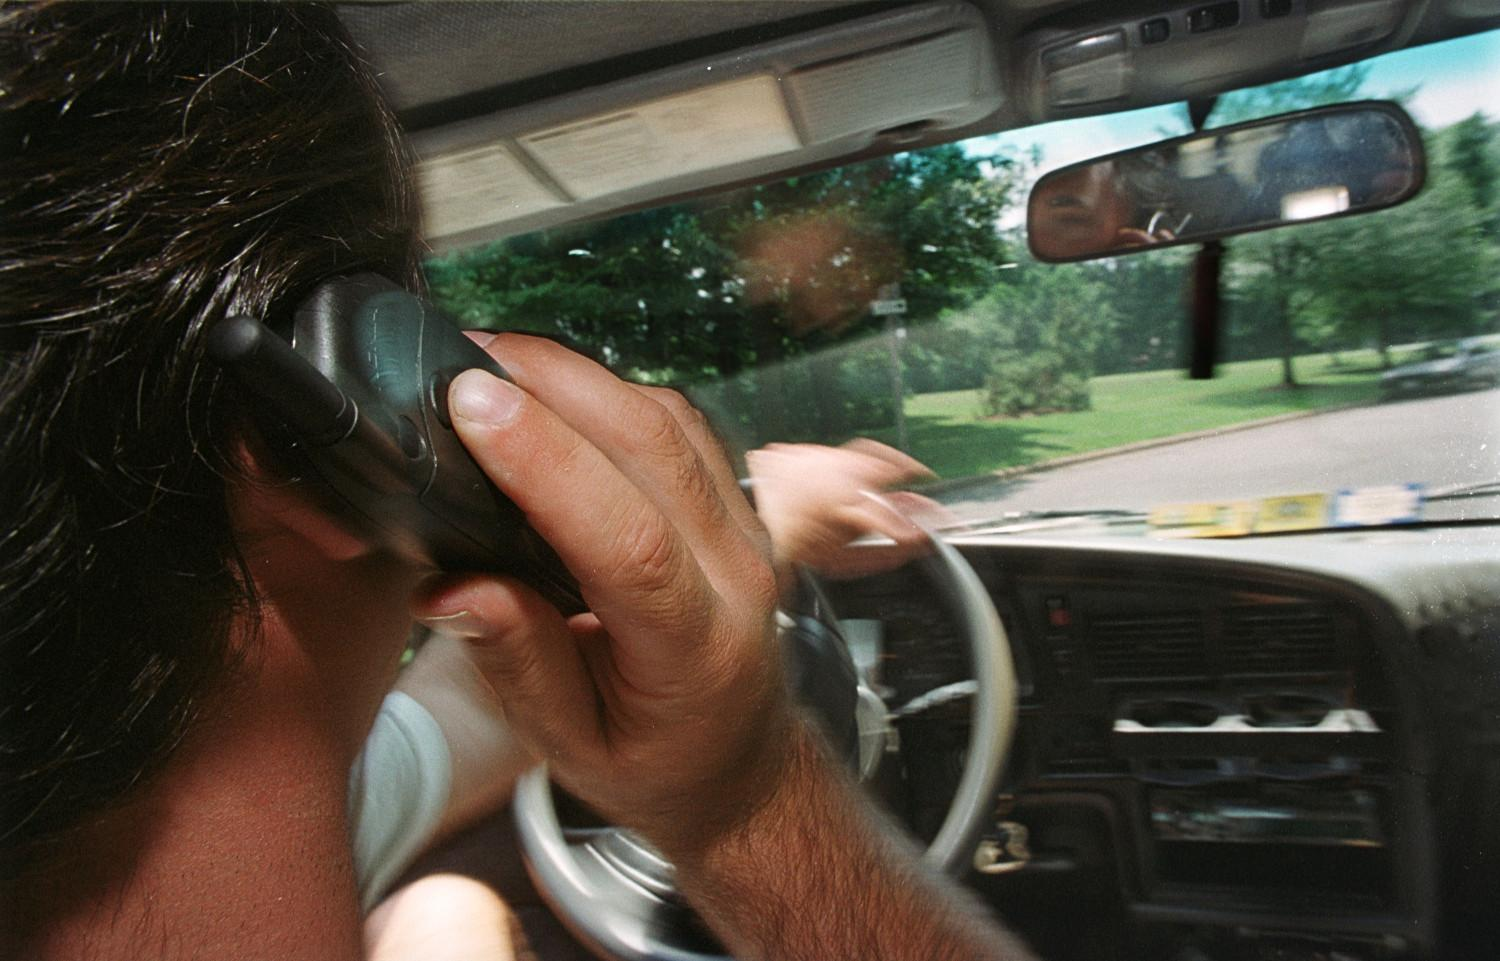 an analysis of distracting calls while driving Driving & talking on the phone is much more distracting than previously thought, even with a hands-free device  texting while driving is illegal in  i've always rationalized my driving phone .